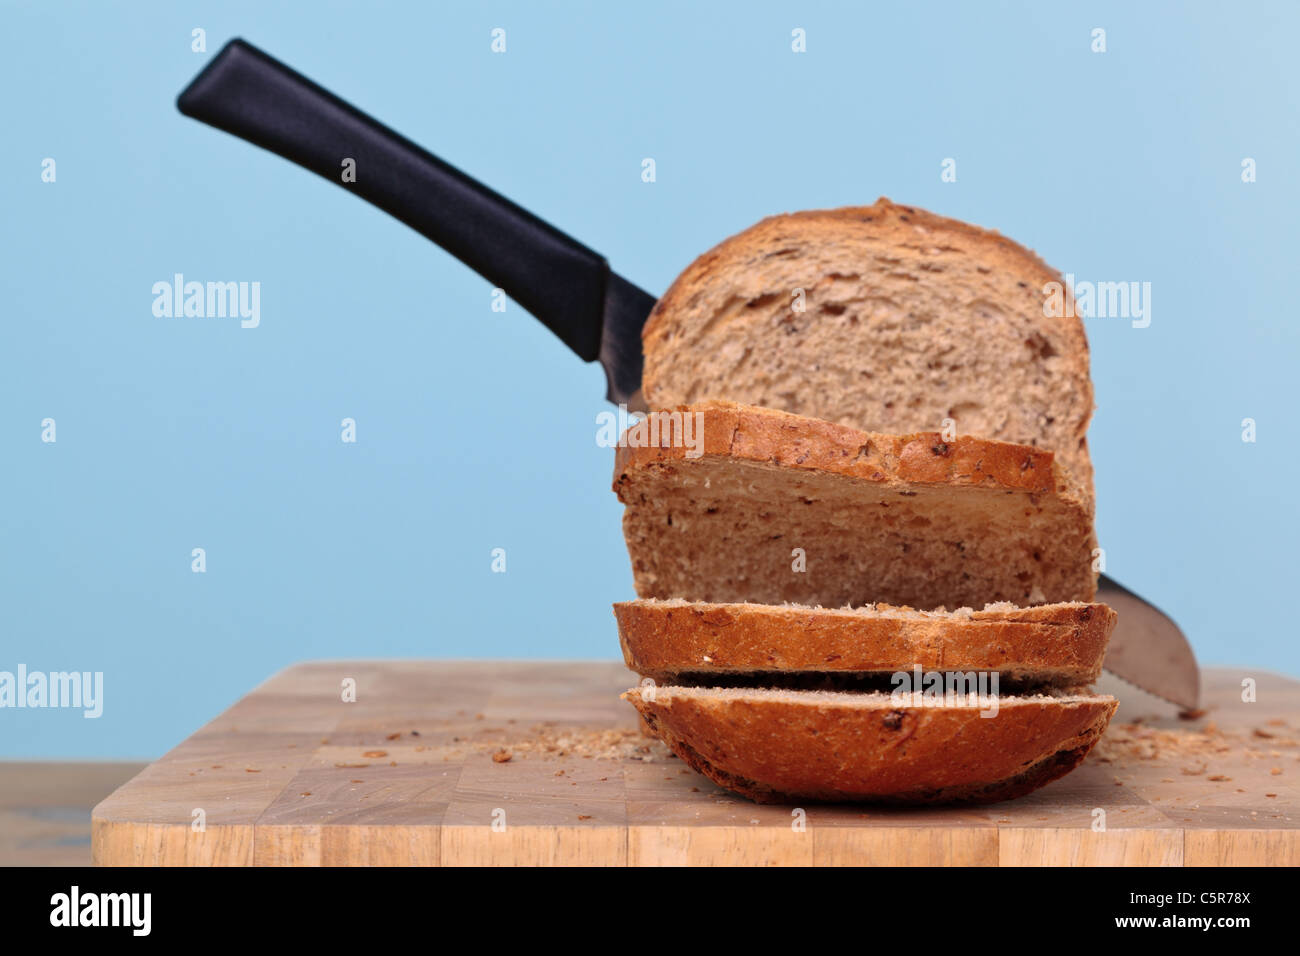 Photo of a wholemeal loaf of bread being sliced with a knife. - Stock Image